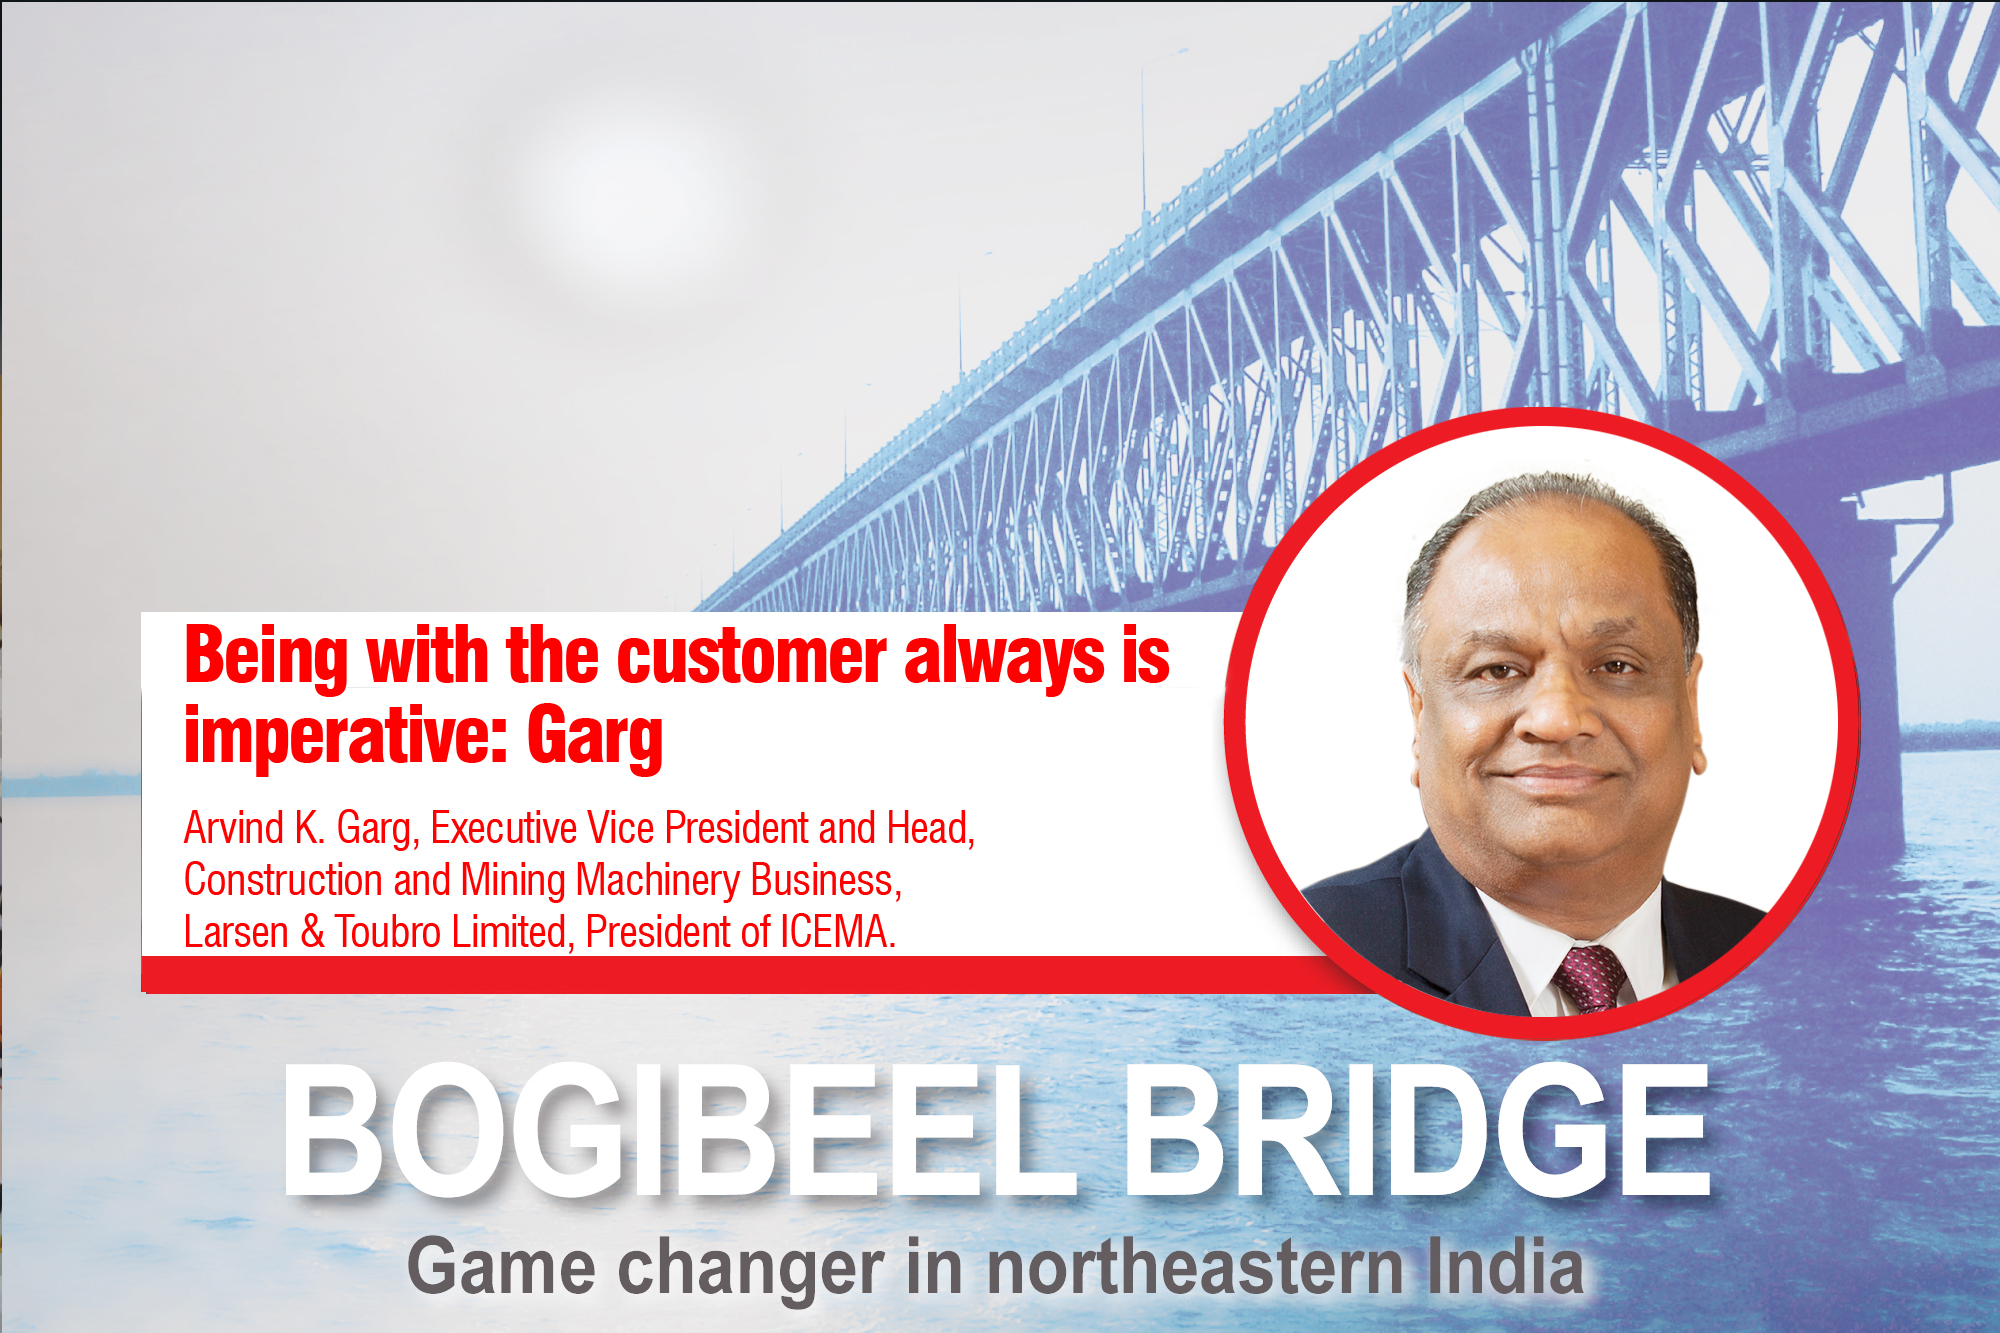 Being with the customer always is imperative: Garg